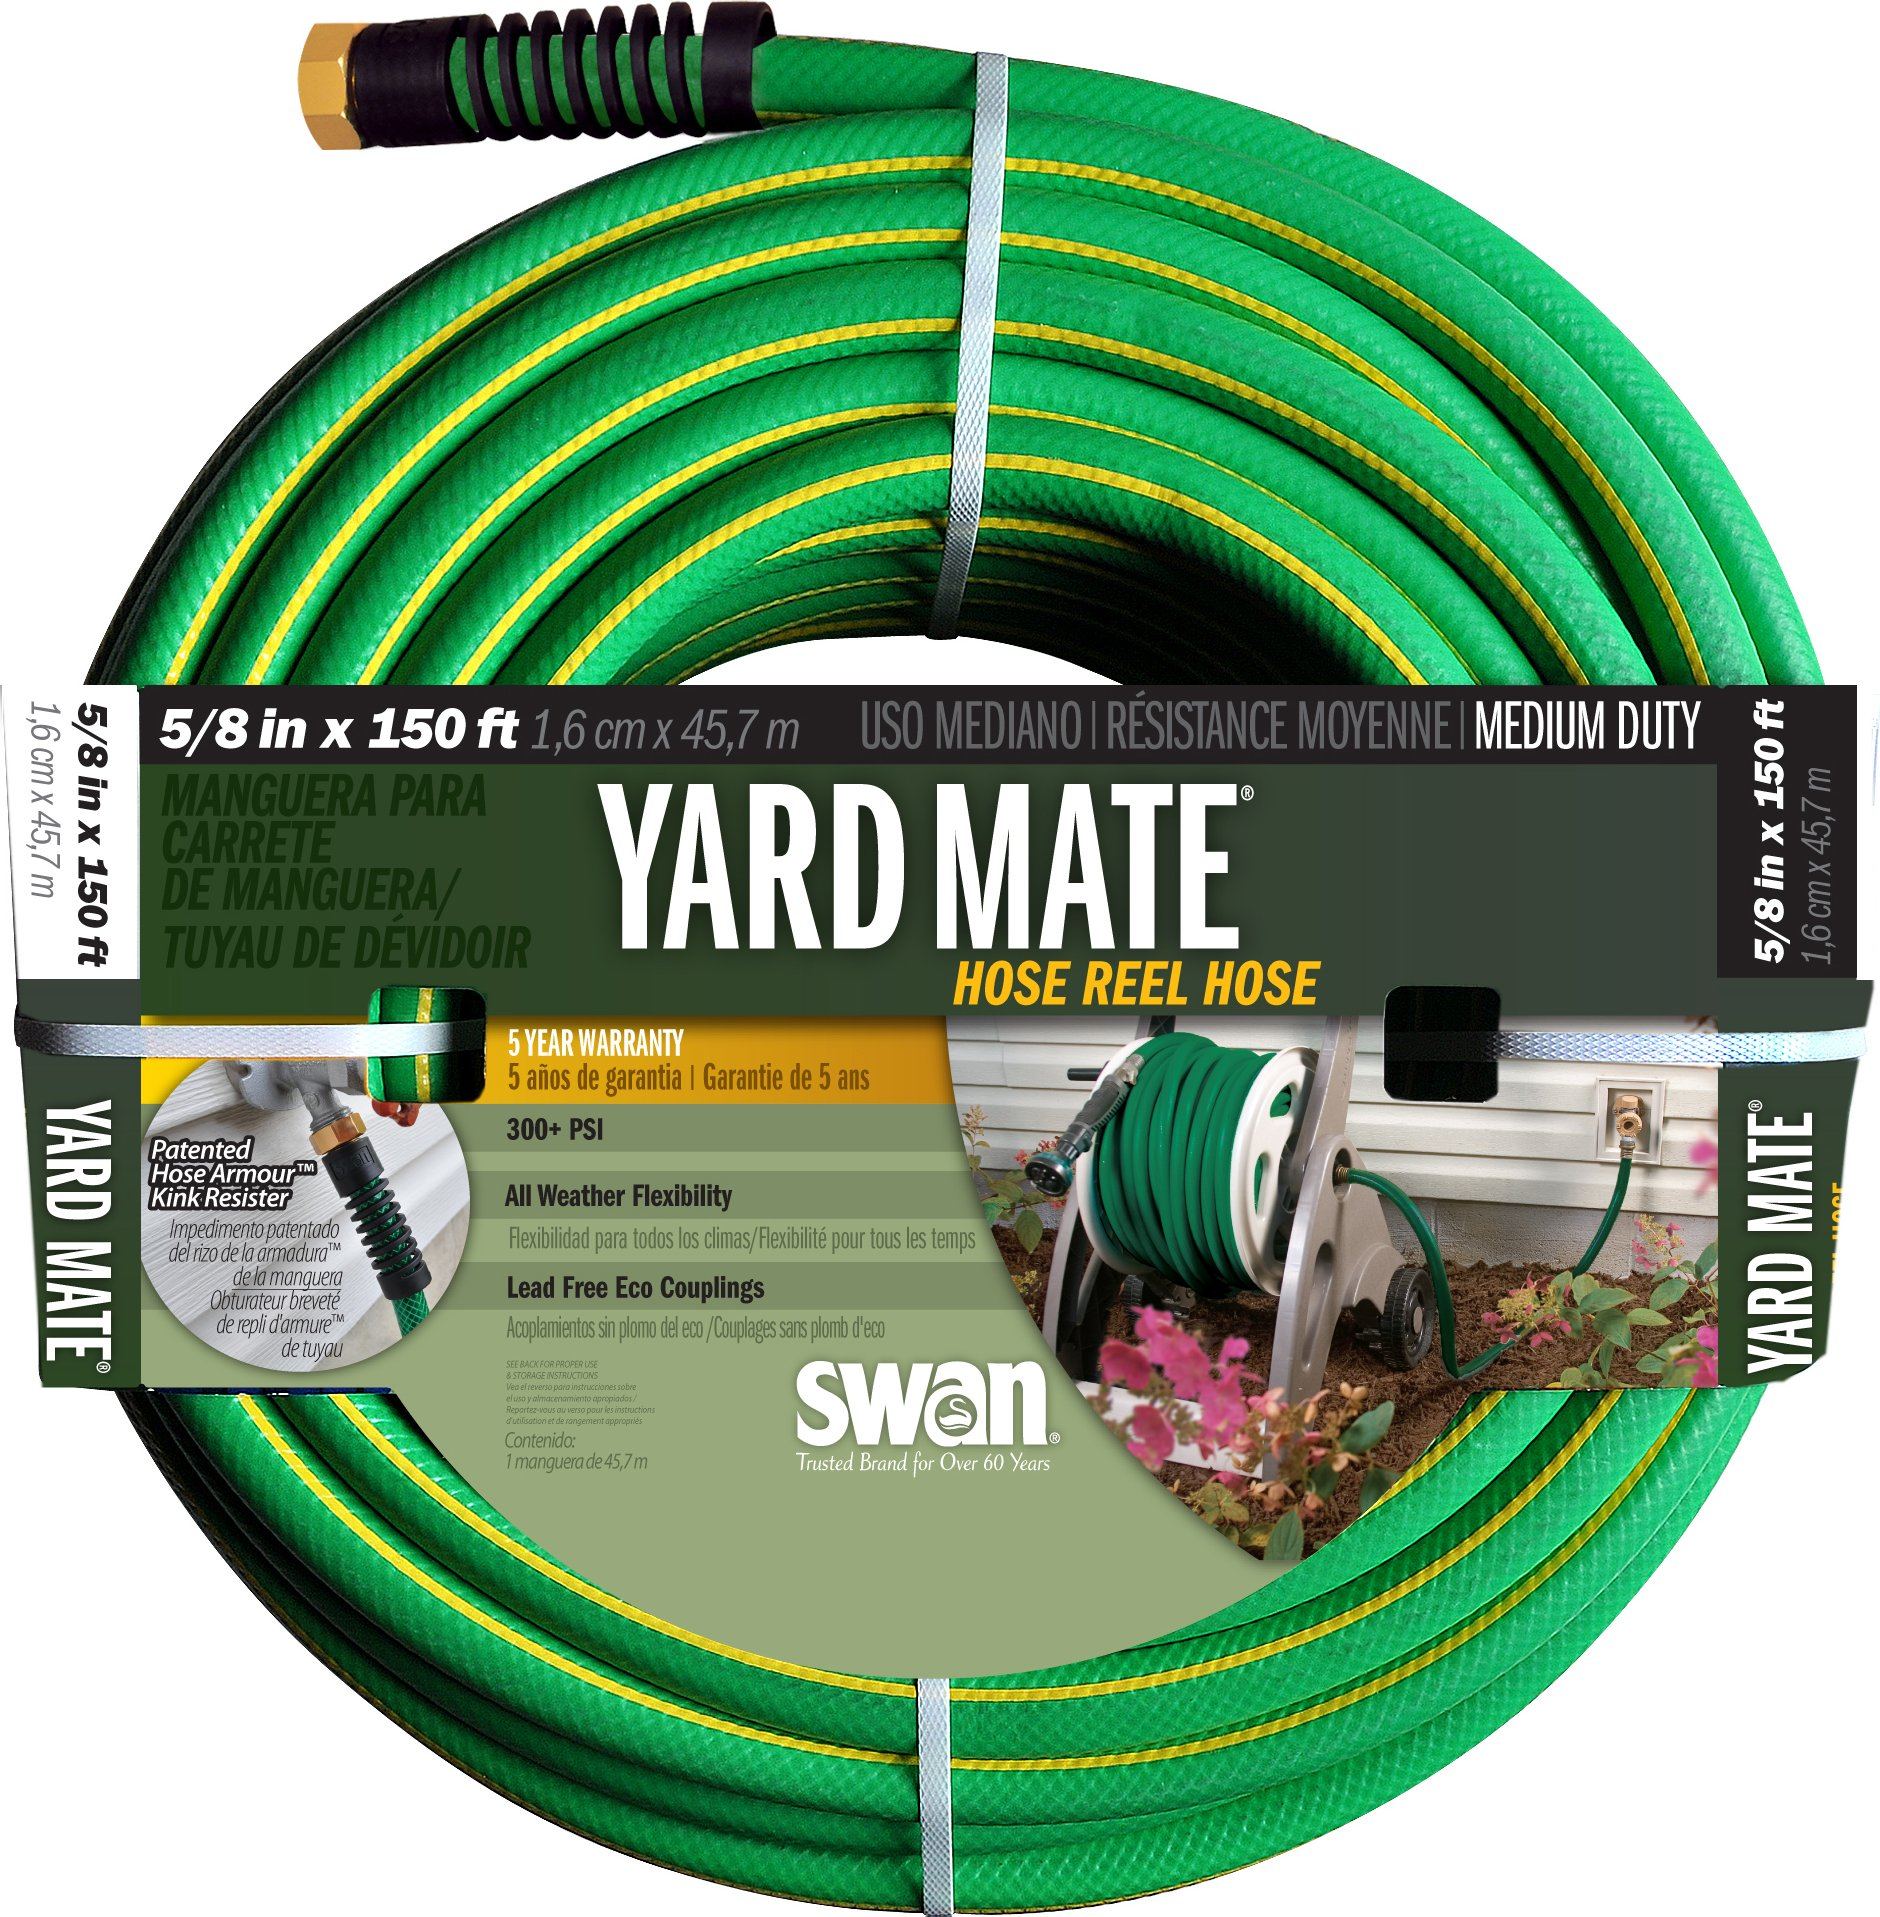 Swan Products SNHR58150 Yard Mate Easy Reel Lightweight Hose 150' x 5/8'', Green